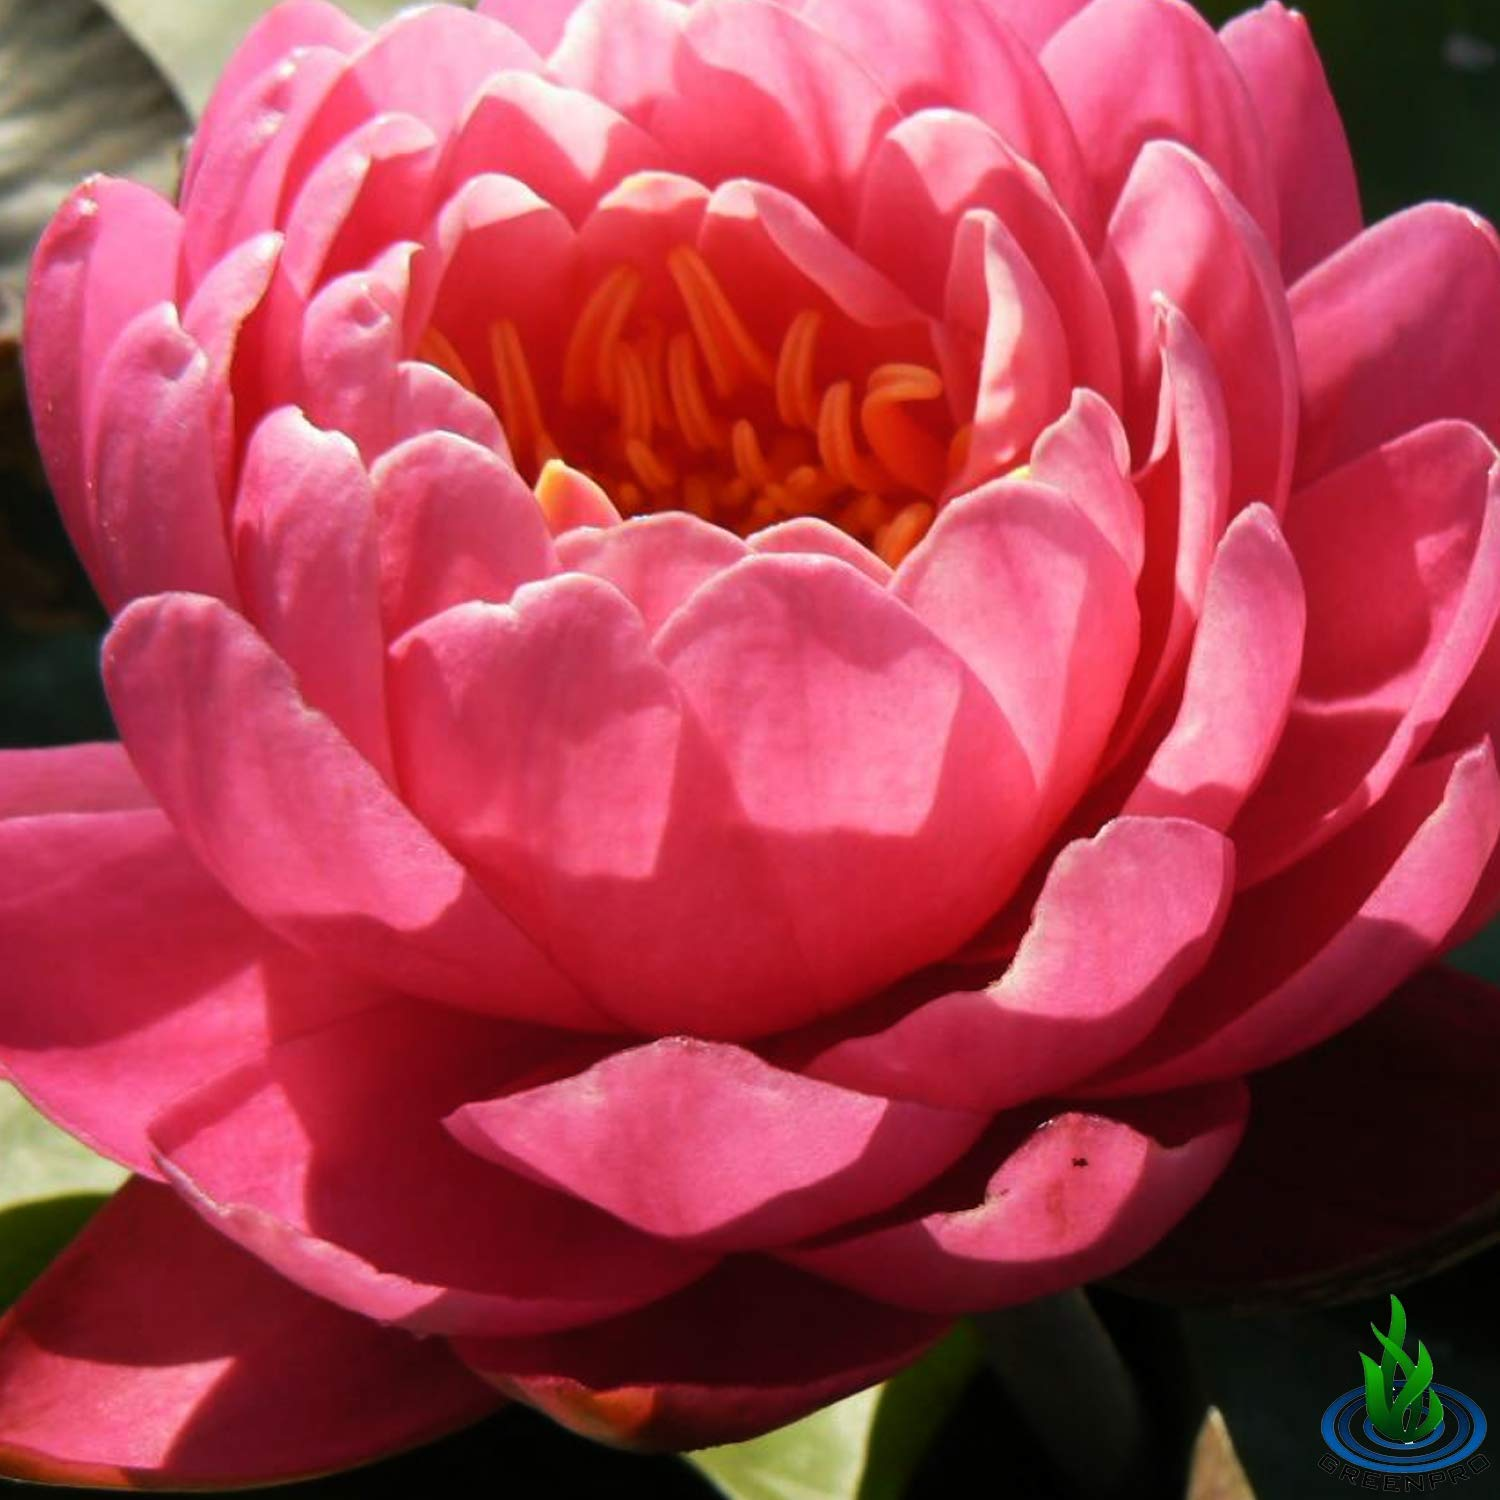 Live Water Lily Tuber Nymphaea Perry's Fire Opal Pink Red Hardy Aquatic Plants for Aquarium Freshwater Fish Pond Flower Garden by Greenpro (Image #7)